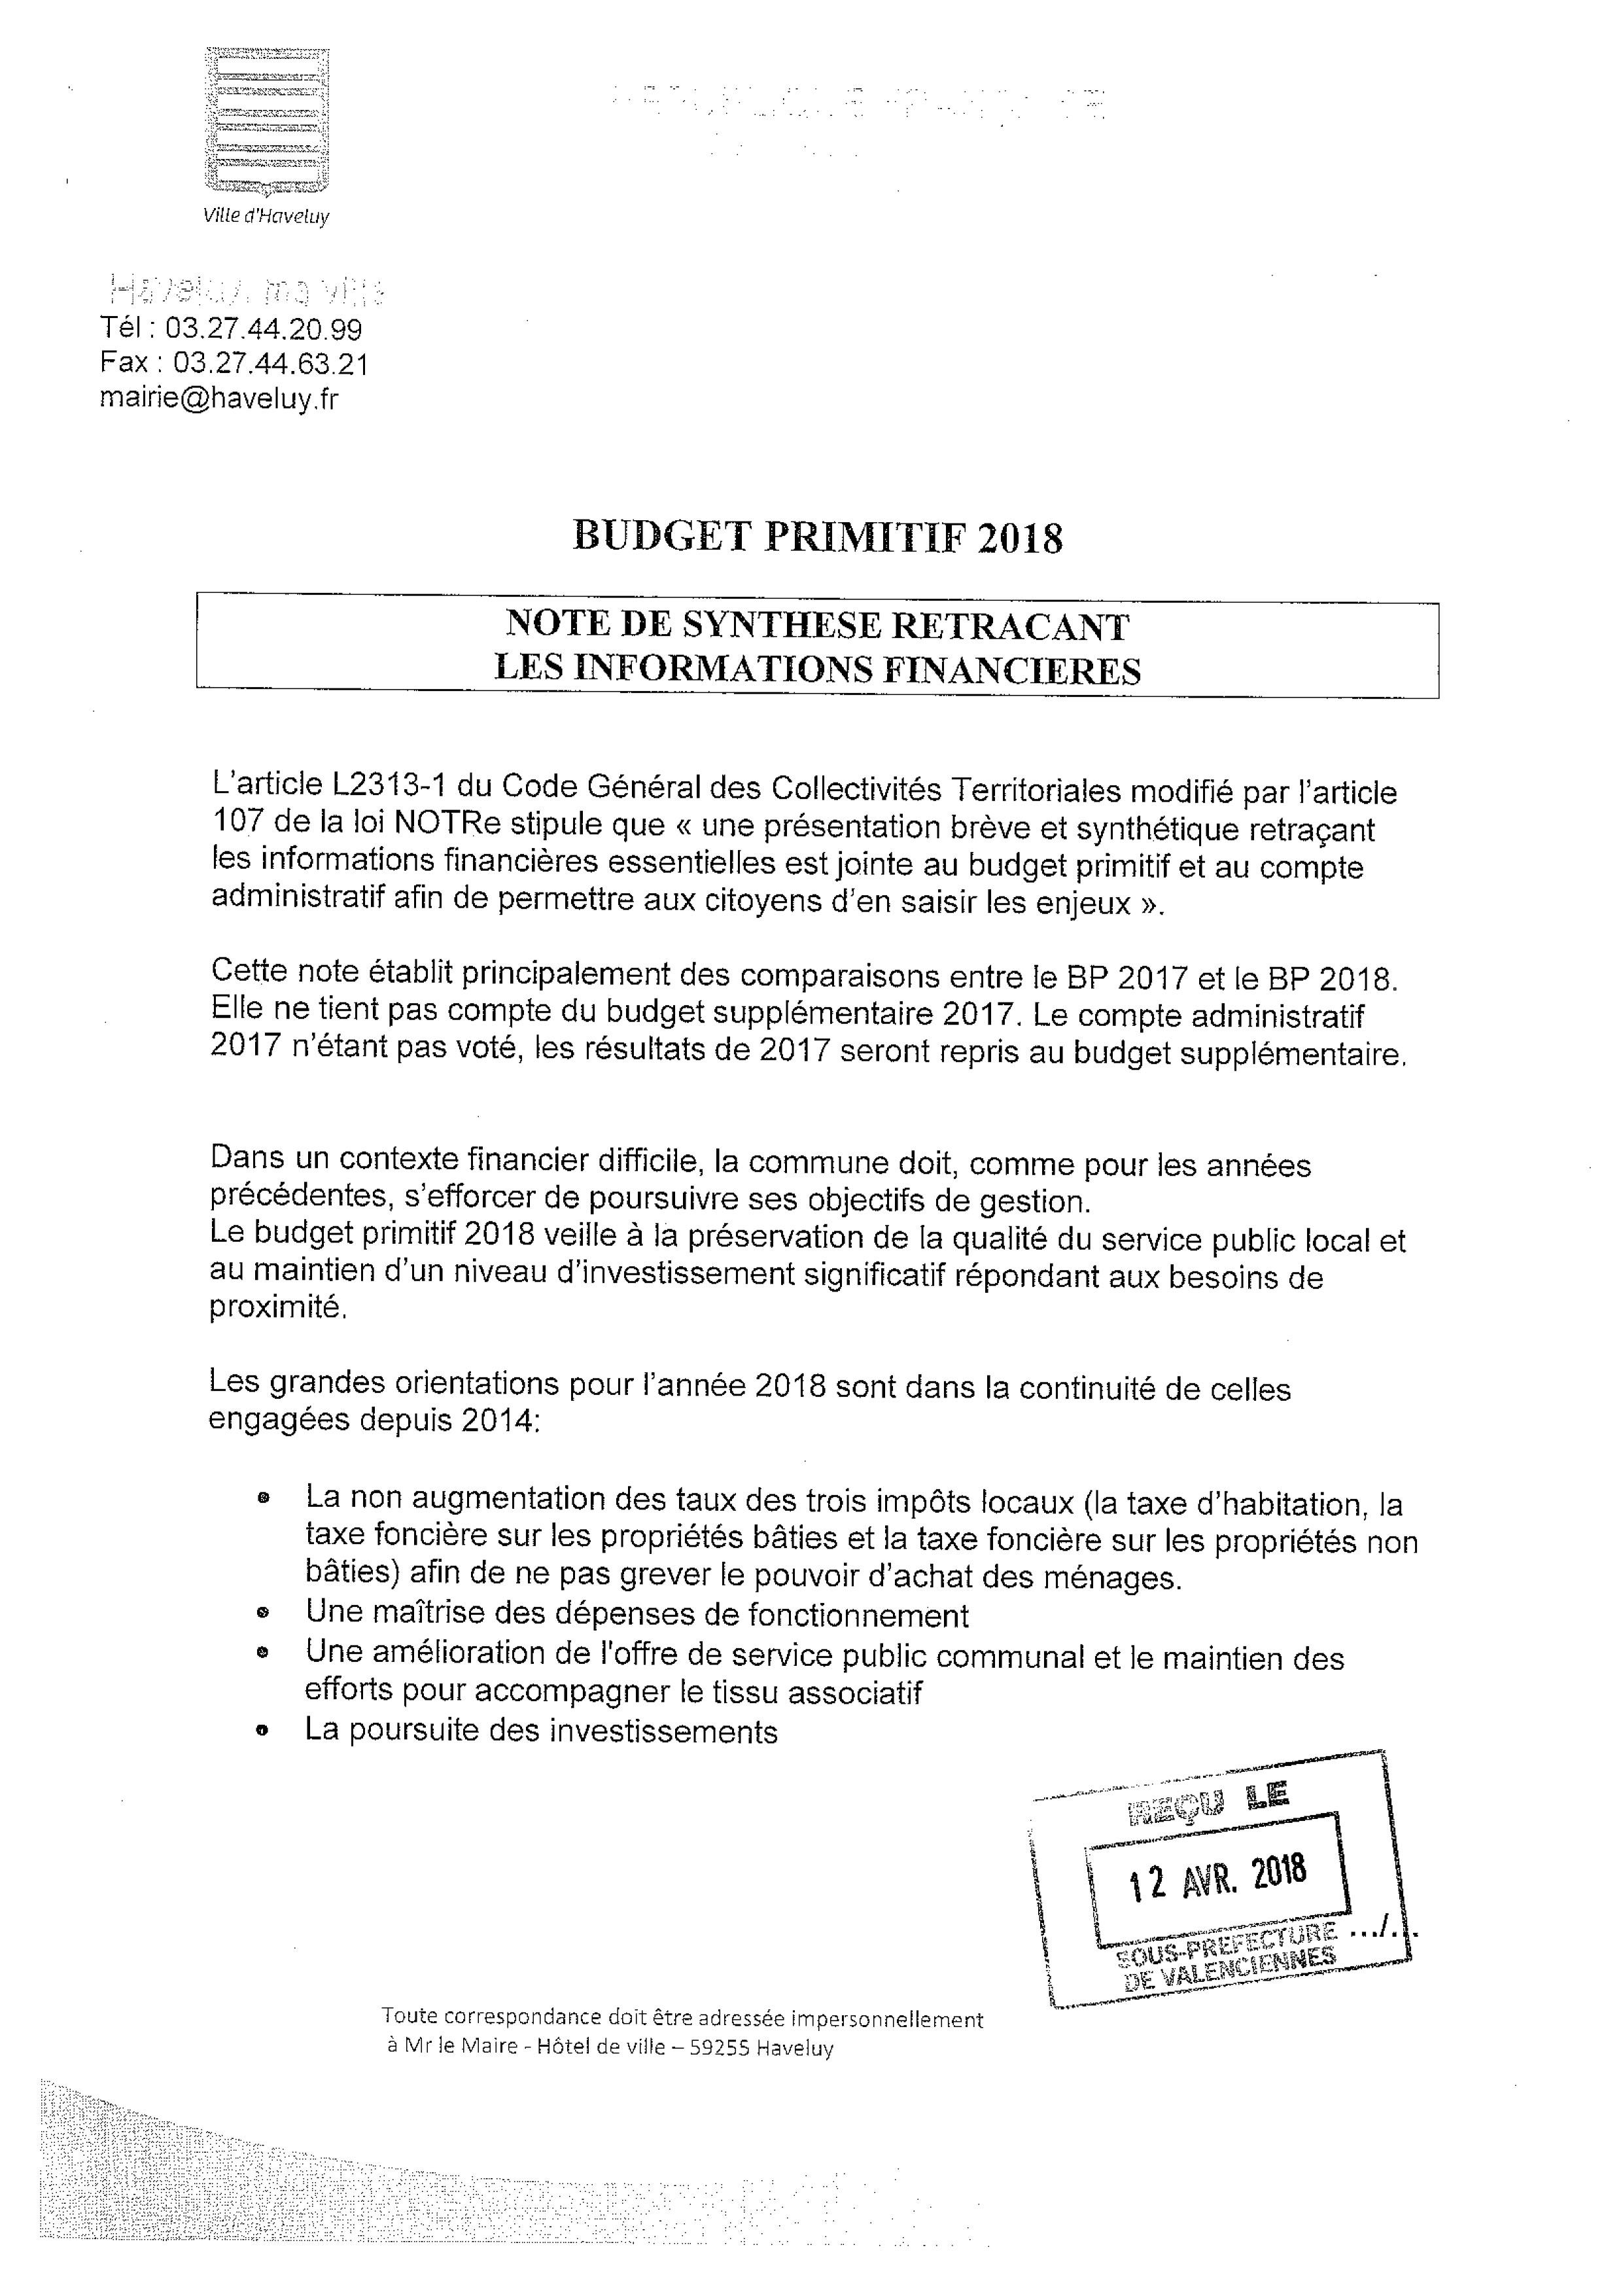 informations financieres budget primitif 2019